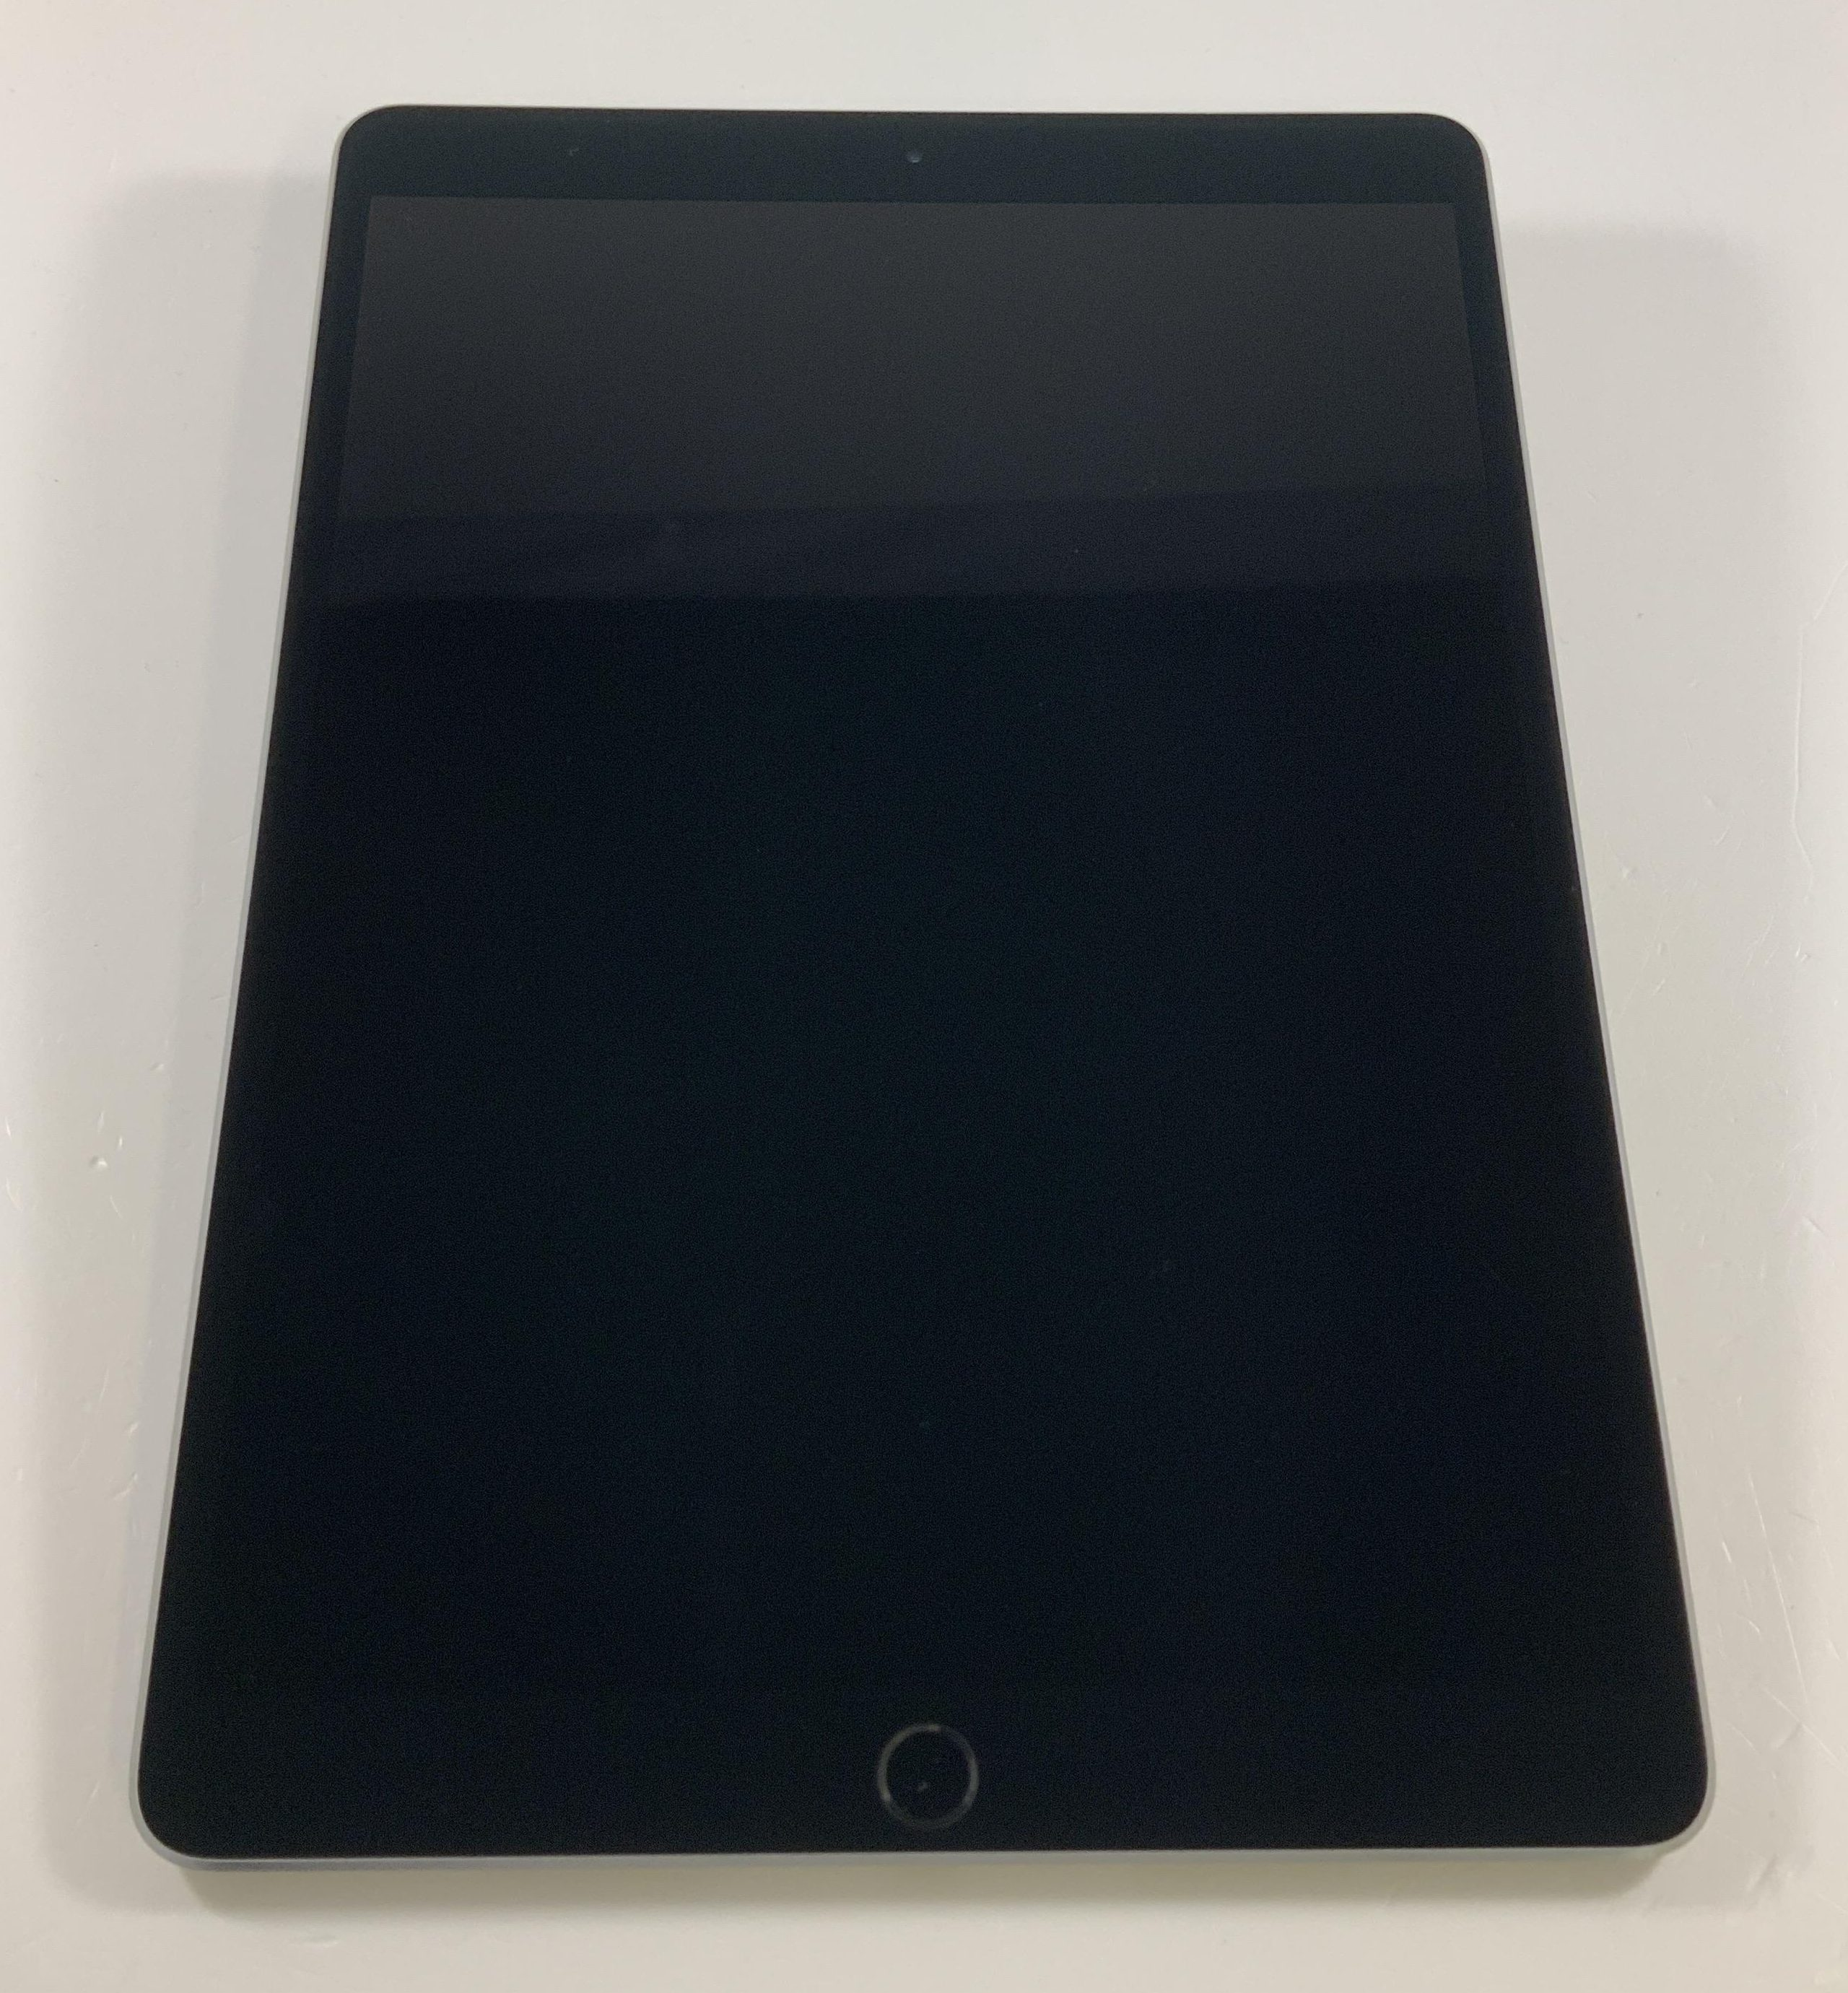 "iPad Pro 10.5"" Wi-Fi + Cellular 64GB, 64GB, Space Gray, immagine 1"